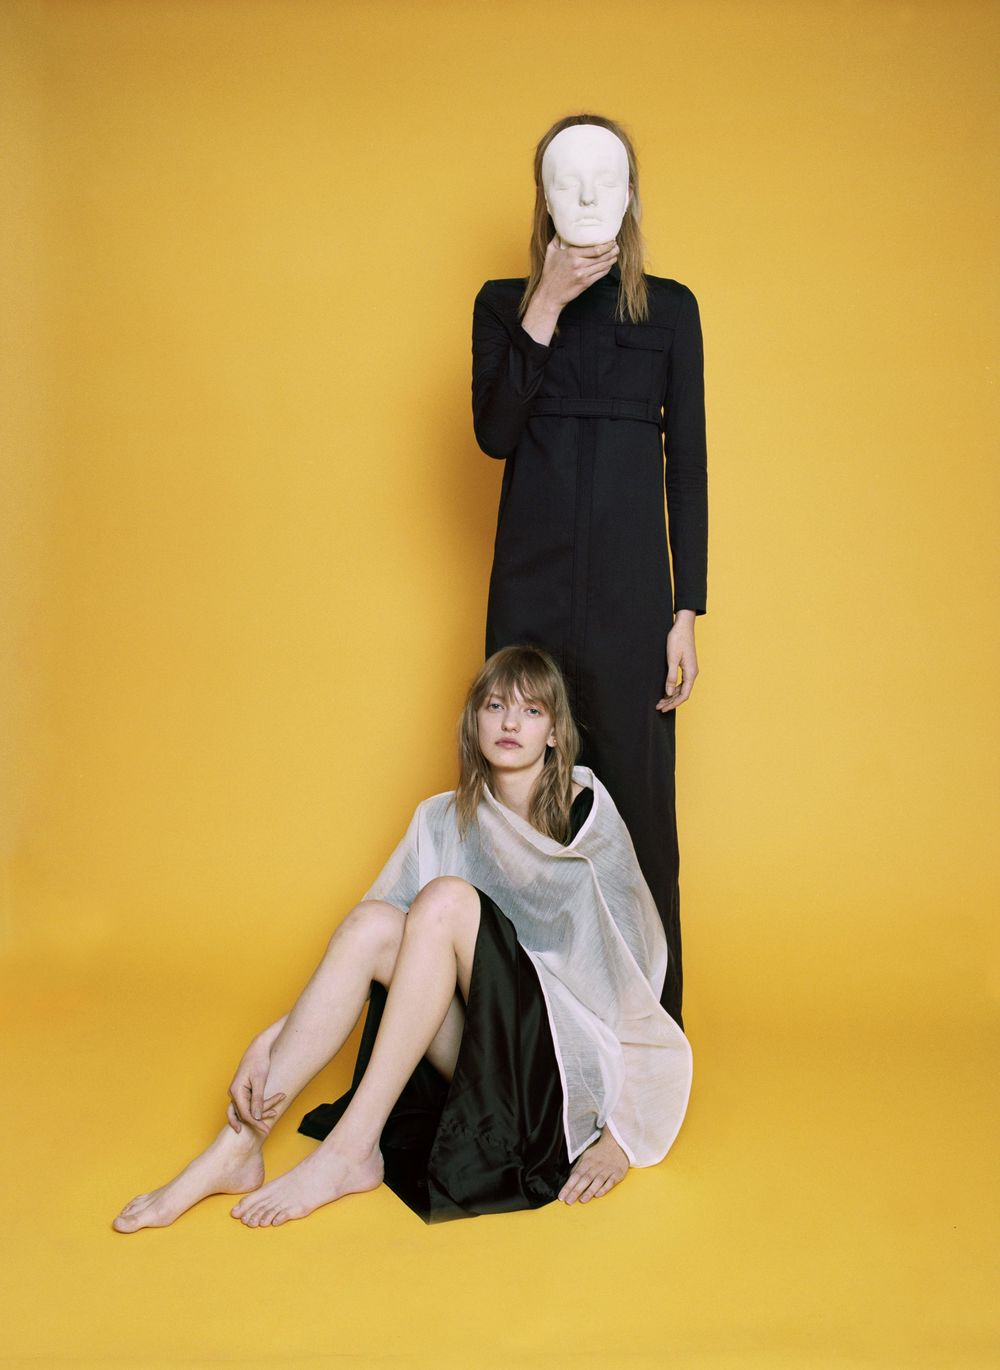 Black gabardine coat  LÉA PECKRE,  ramie and nylon sheer tunic  ISSEY MIYAKE,  black silk dress  BLESS.